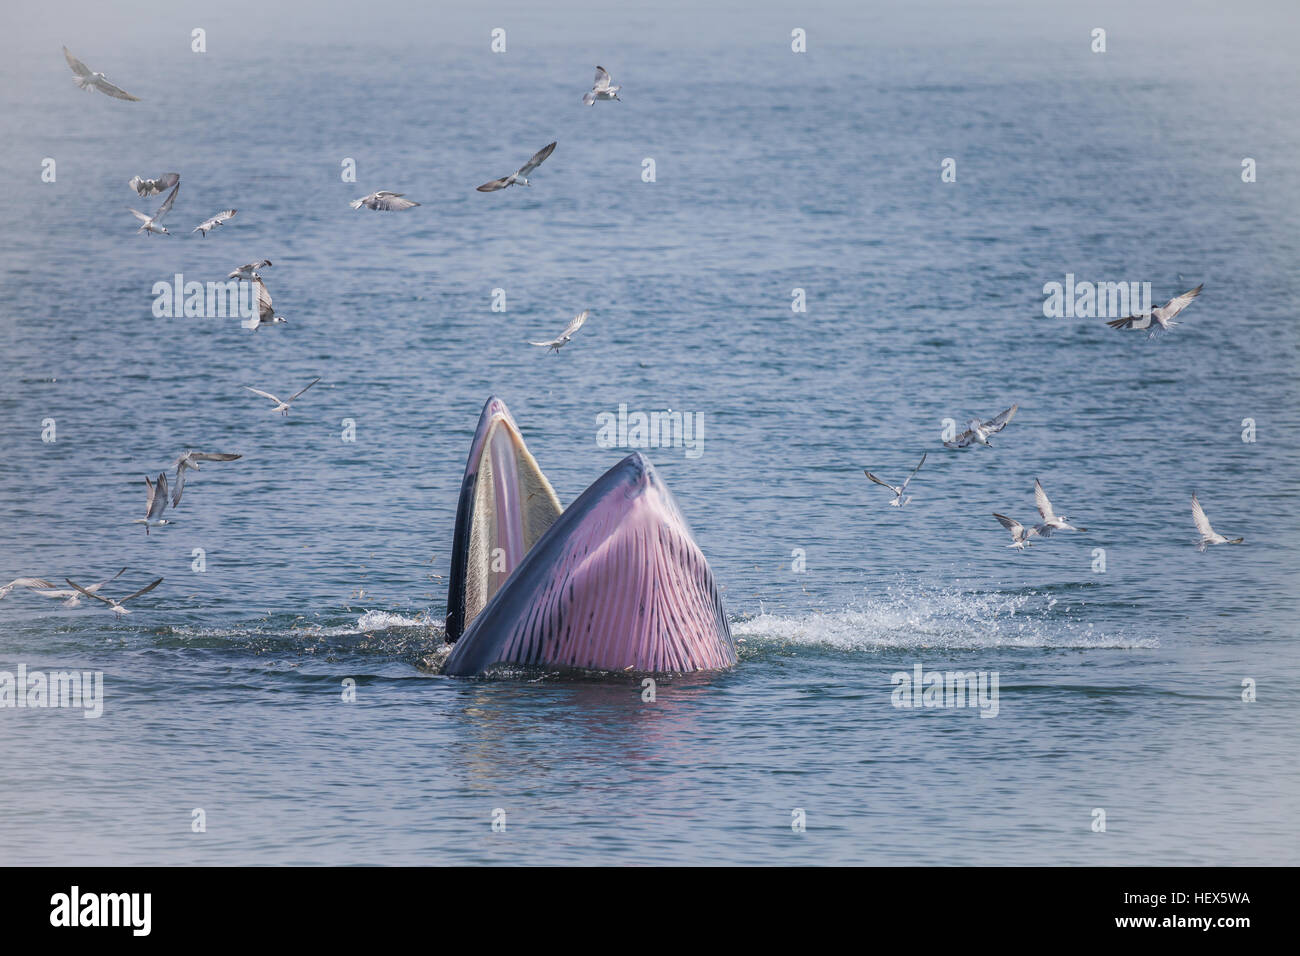 Bryde's whale or the Bryde's whale complex  putatively comprises two species of rorqual and maybe three. - Stock Image